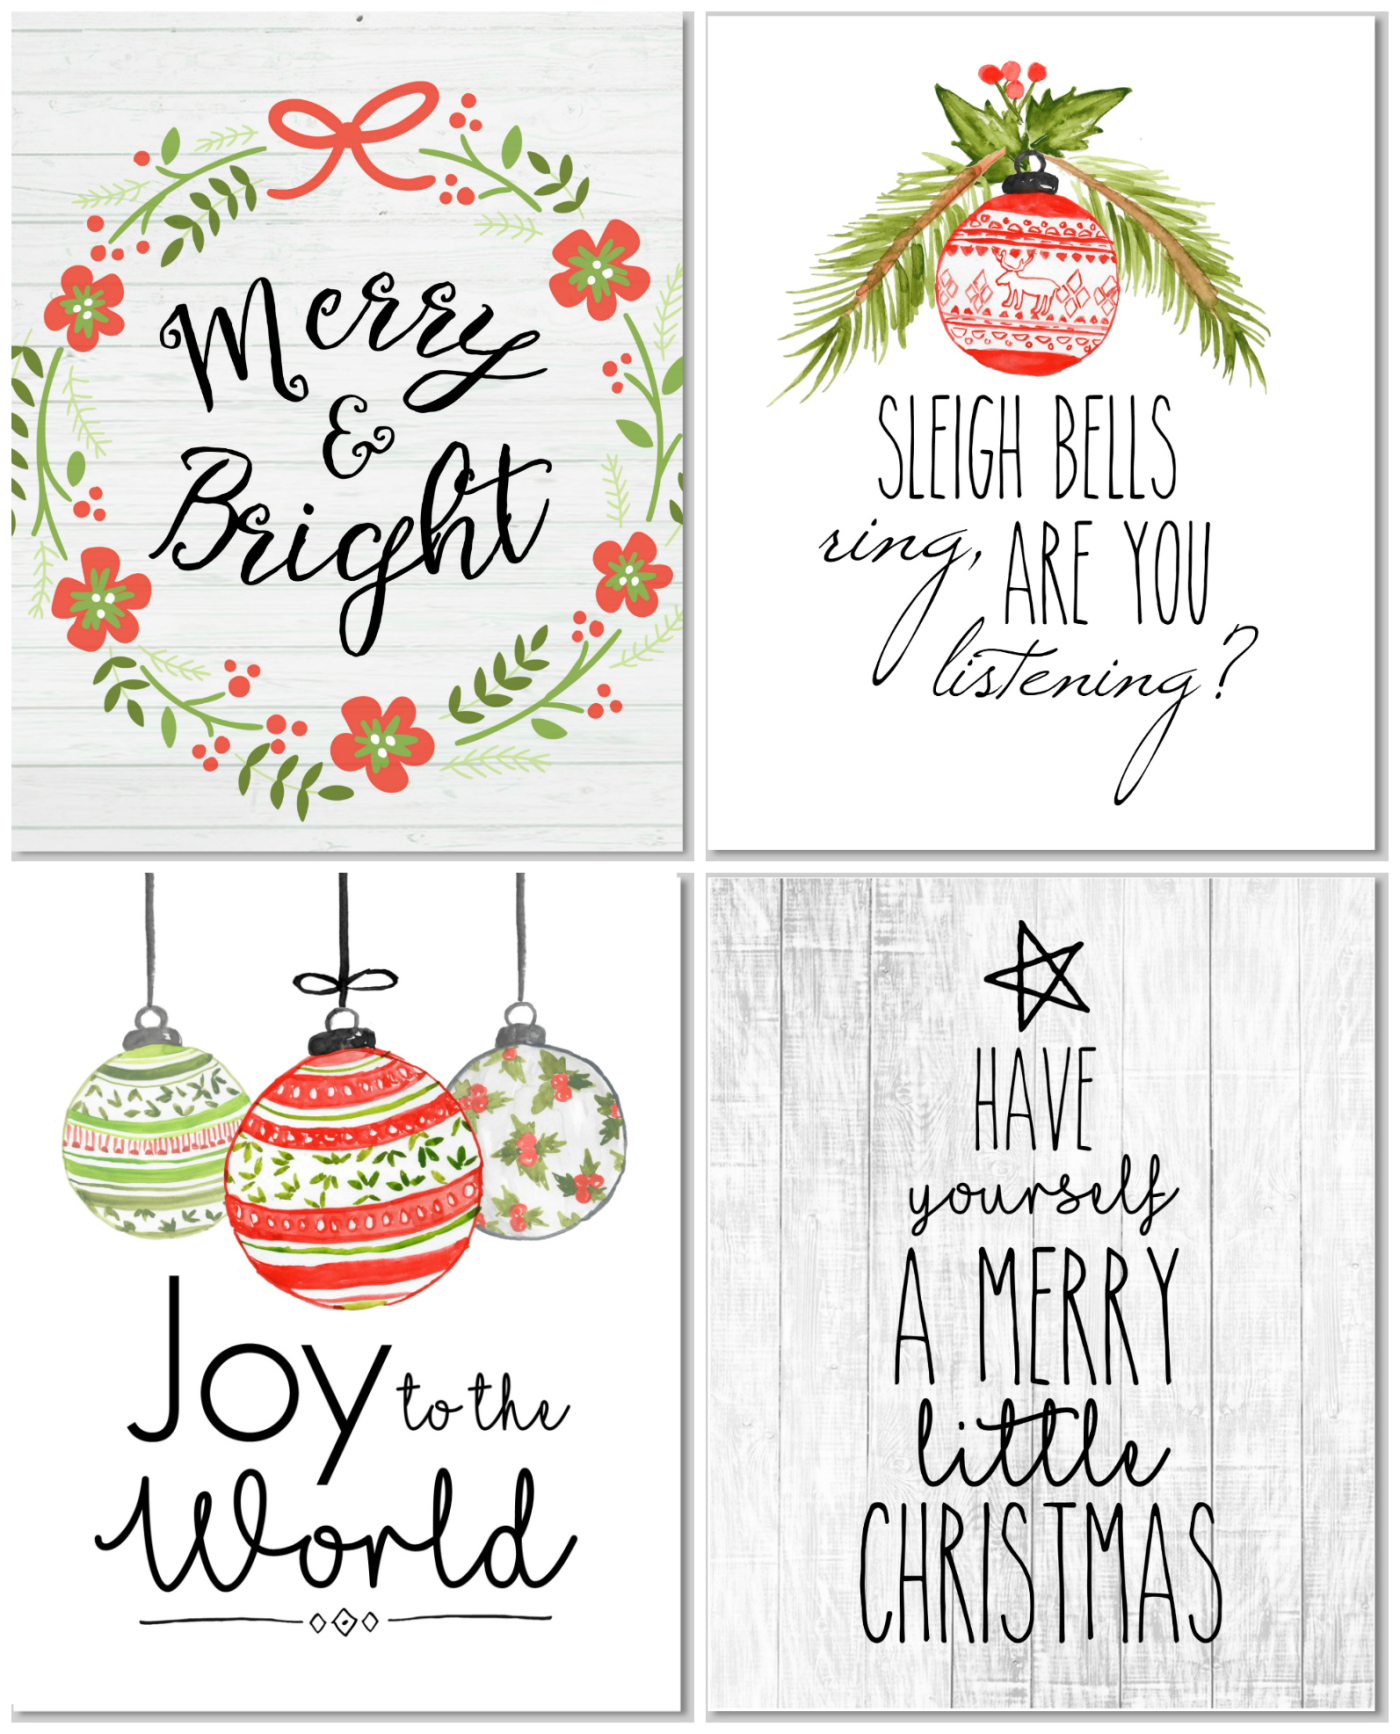 Christmas Farmhouse Decor Your Thing?! Print These for FREE for Project Life/ December Daily cards